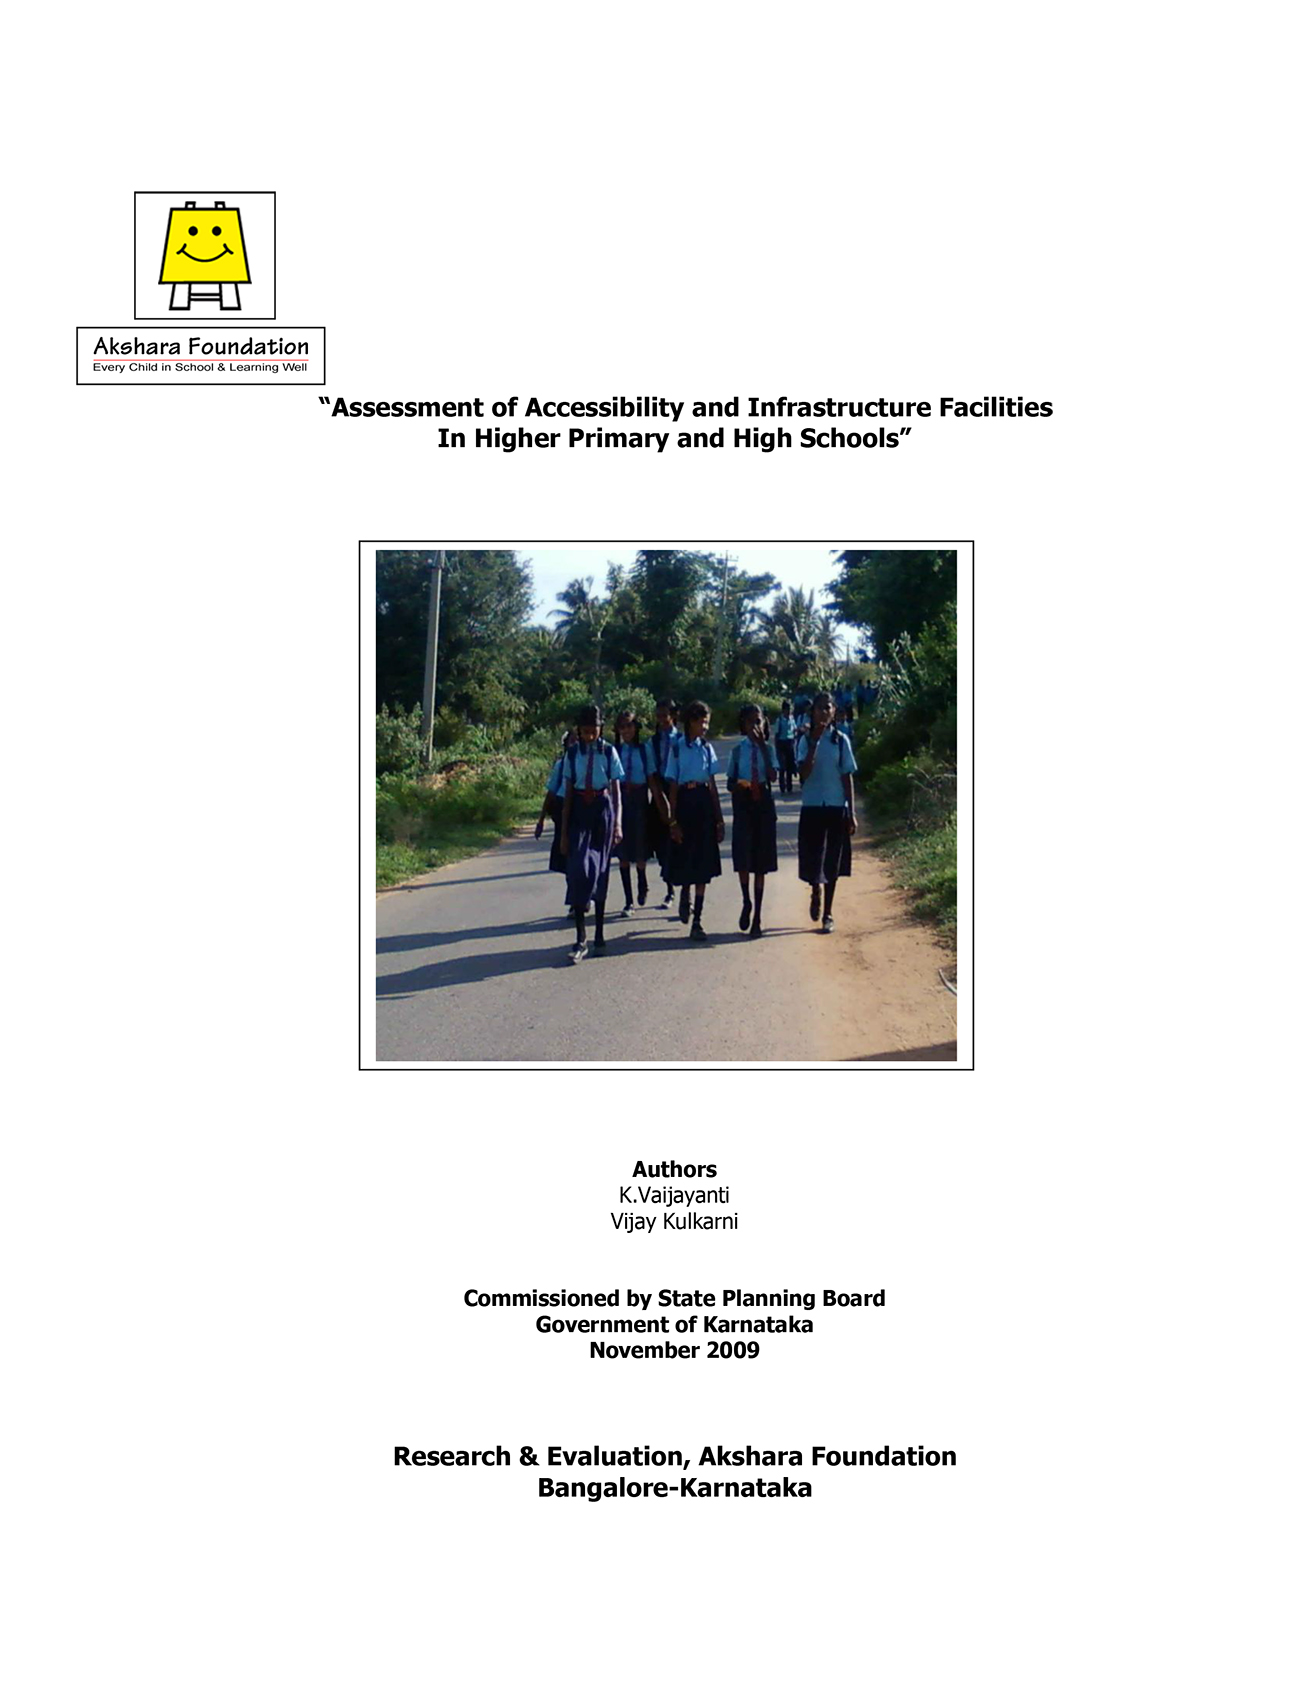 Assessment of Accessibility and Infrastructure Facilities In Higher Primary and High Schools - 2009